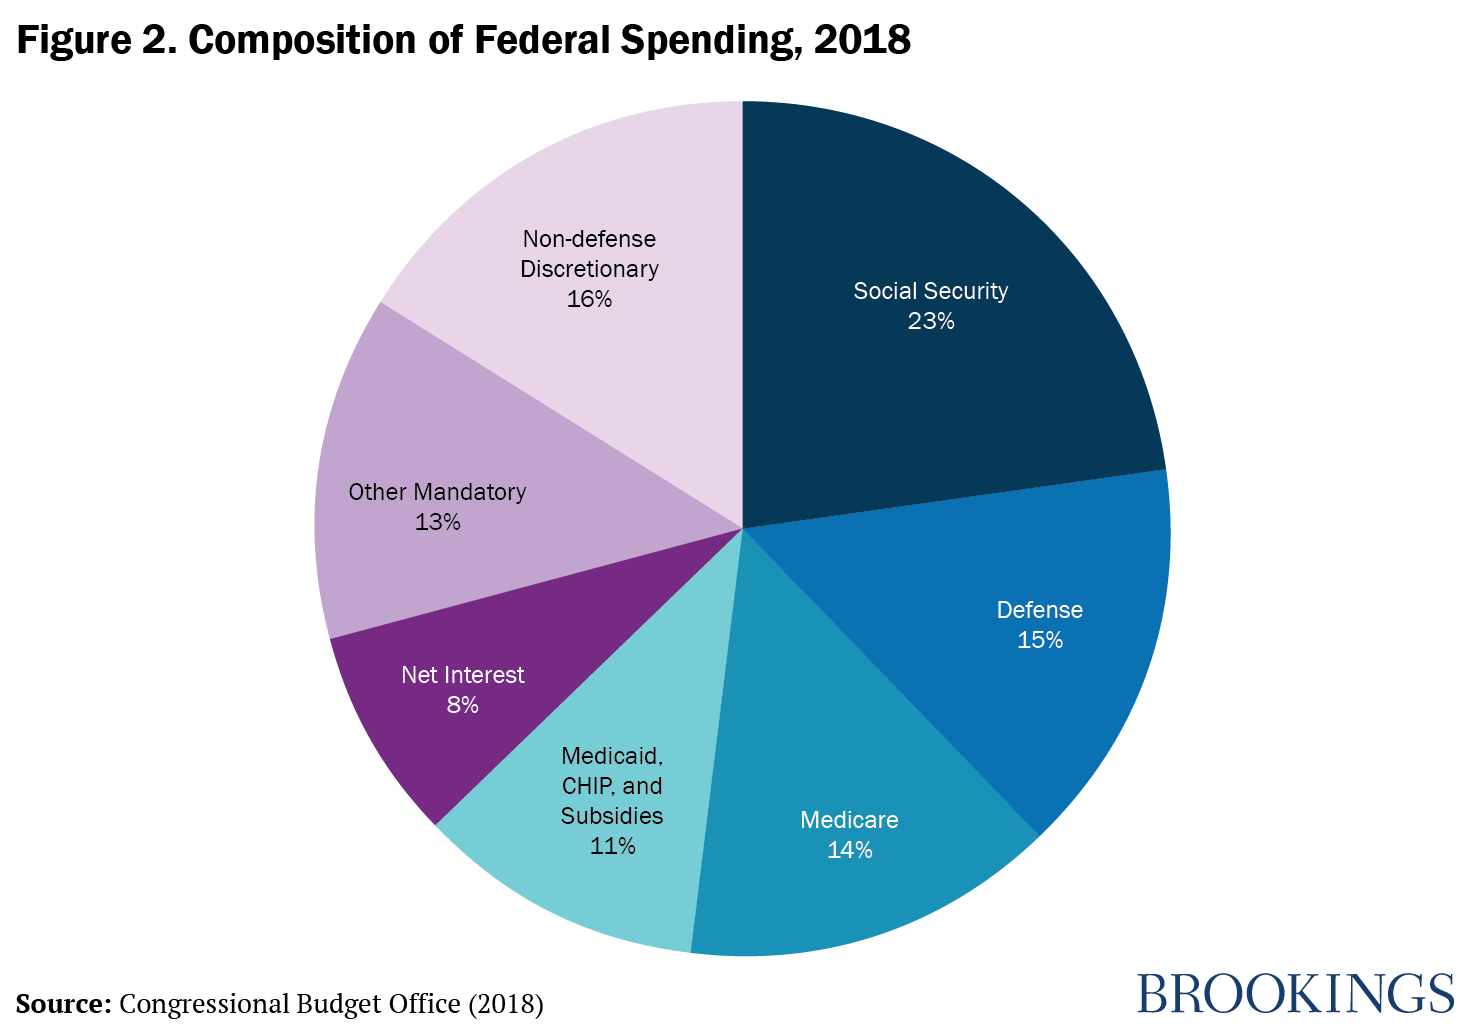 Figure 2. Composition of Federal Spending, 2018